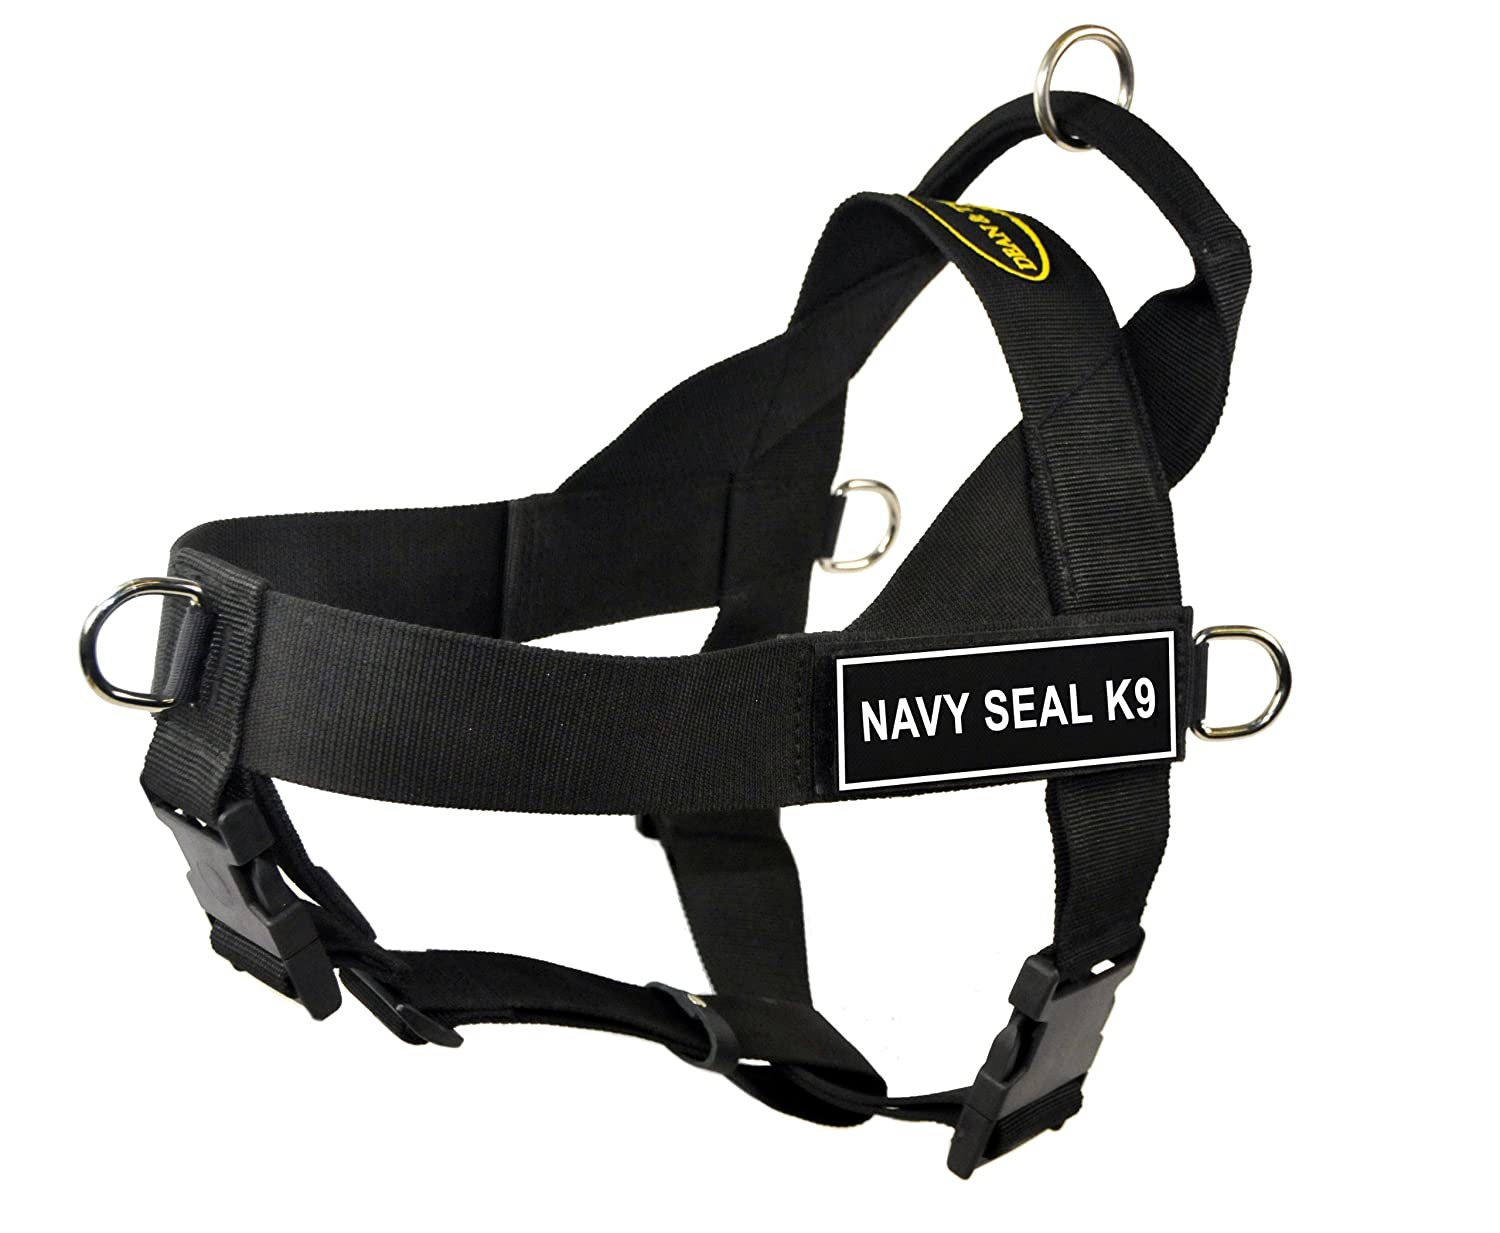 Dean & Tyler Universal No Pull 24-Inch to 27-Inch Dog Harness, Small, Navy Seal K9, Black